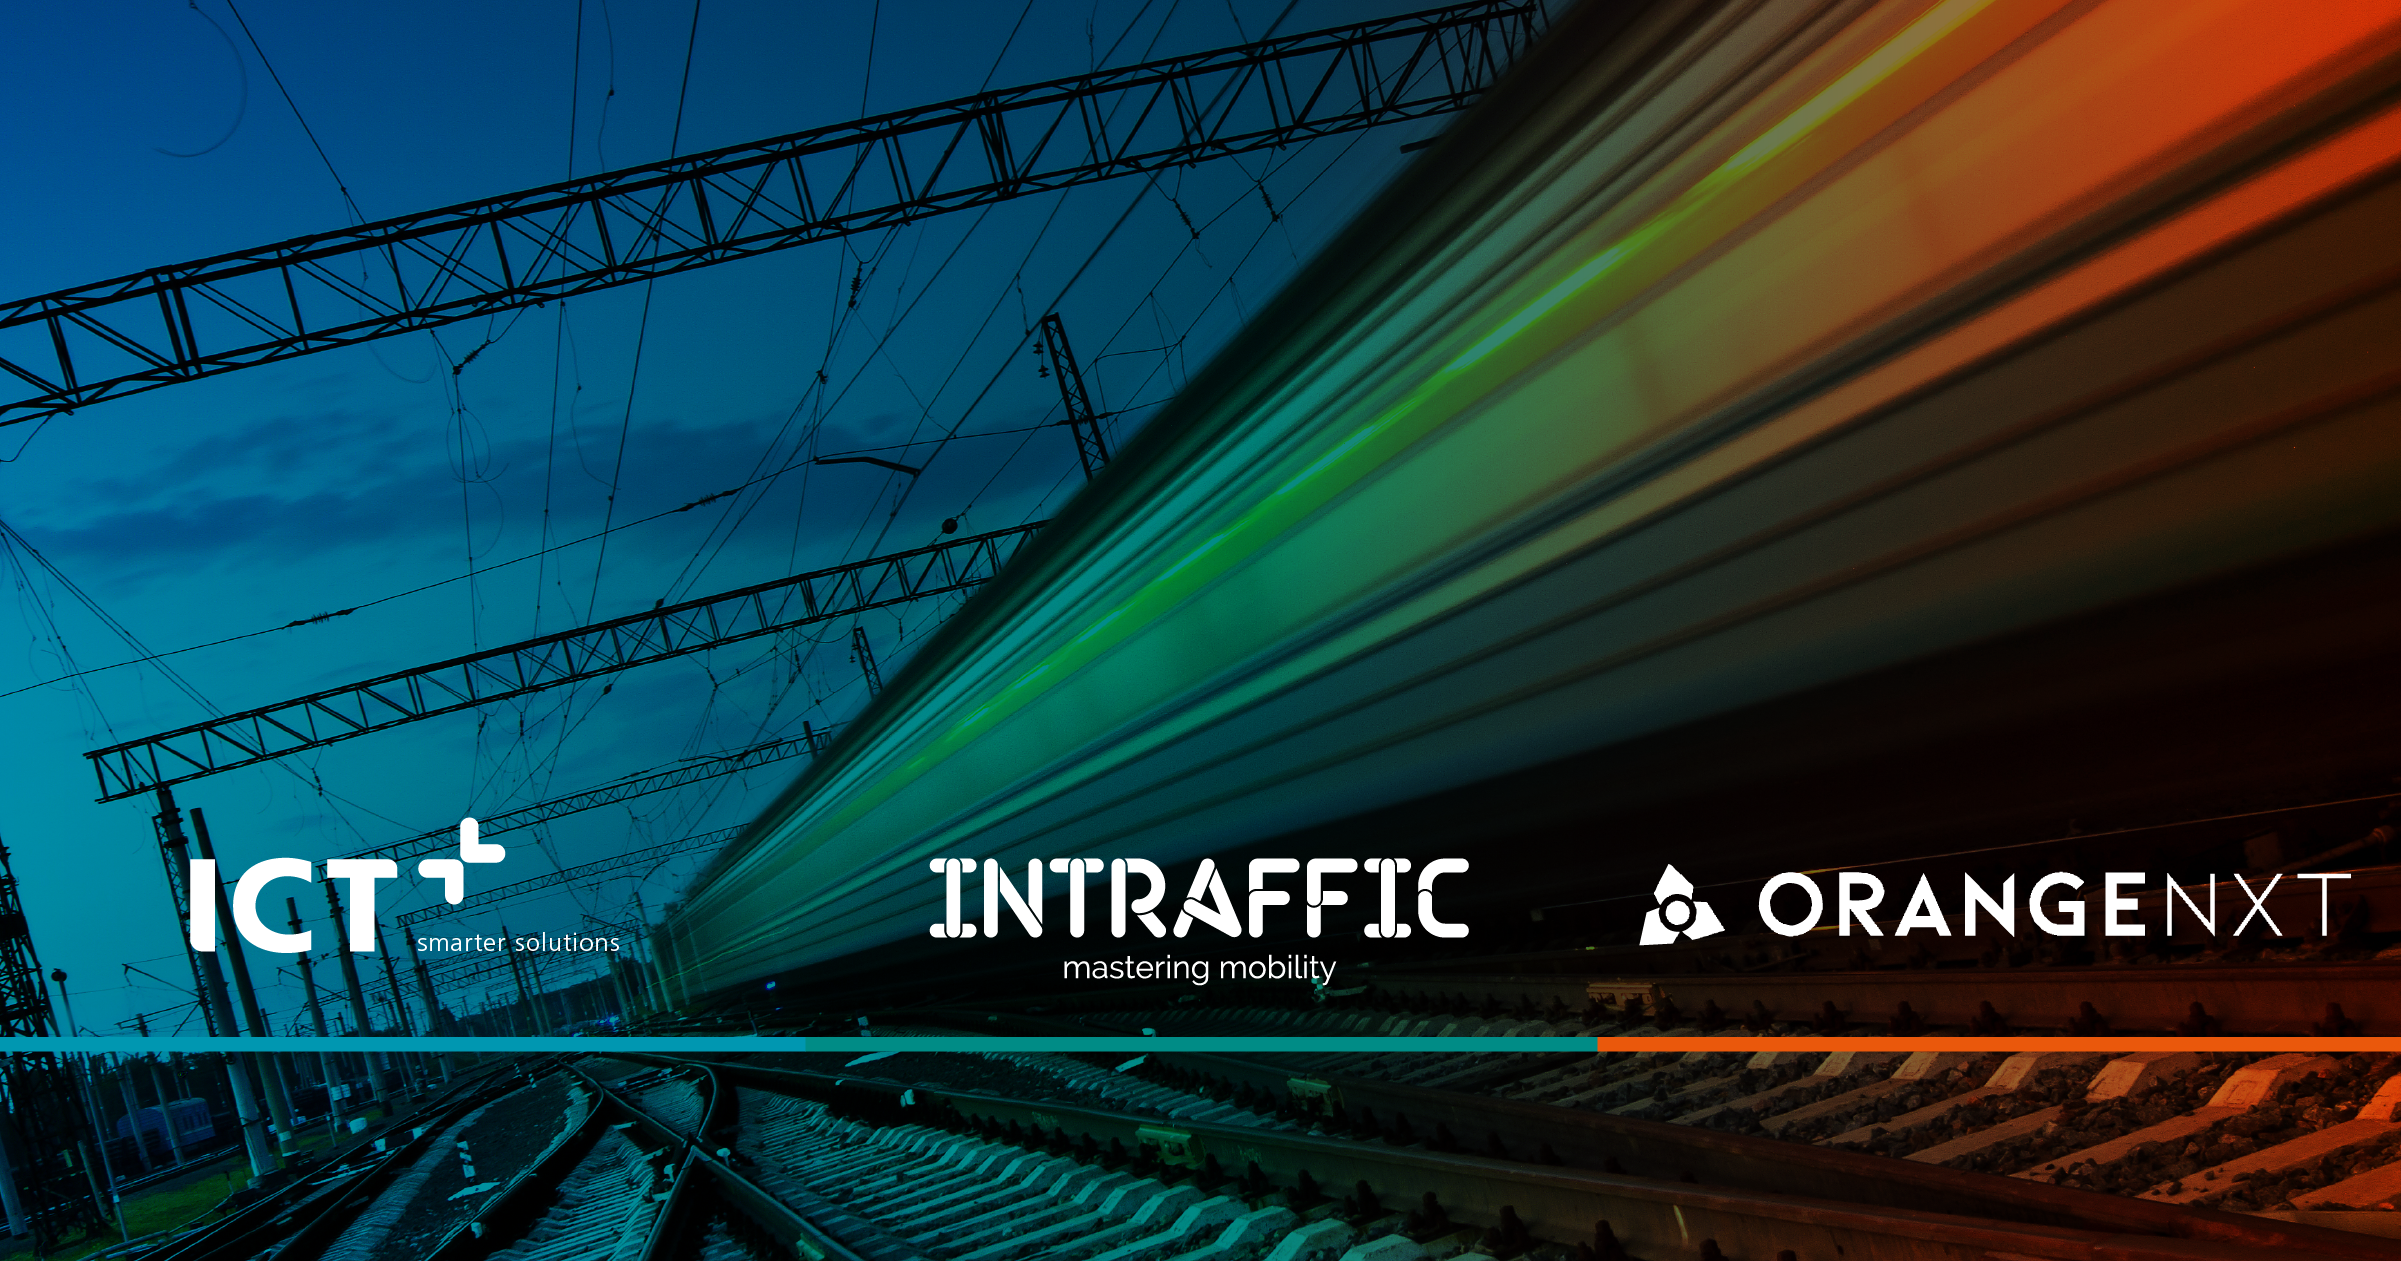 RailTech Europe InTraffic ICT Group OrangeNXT